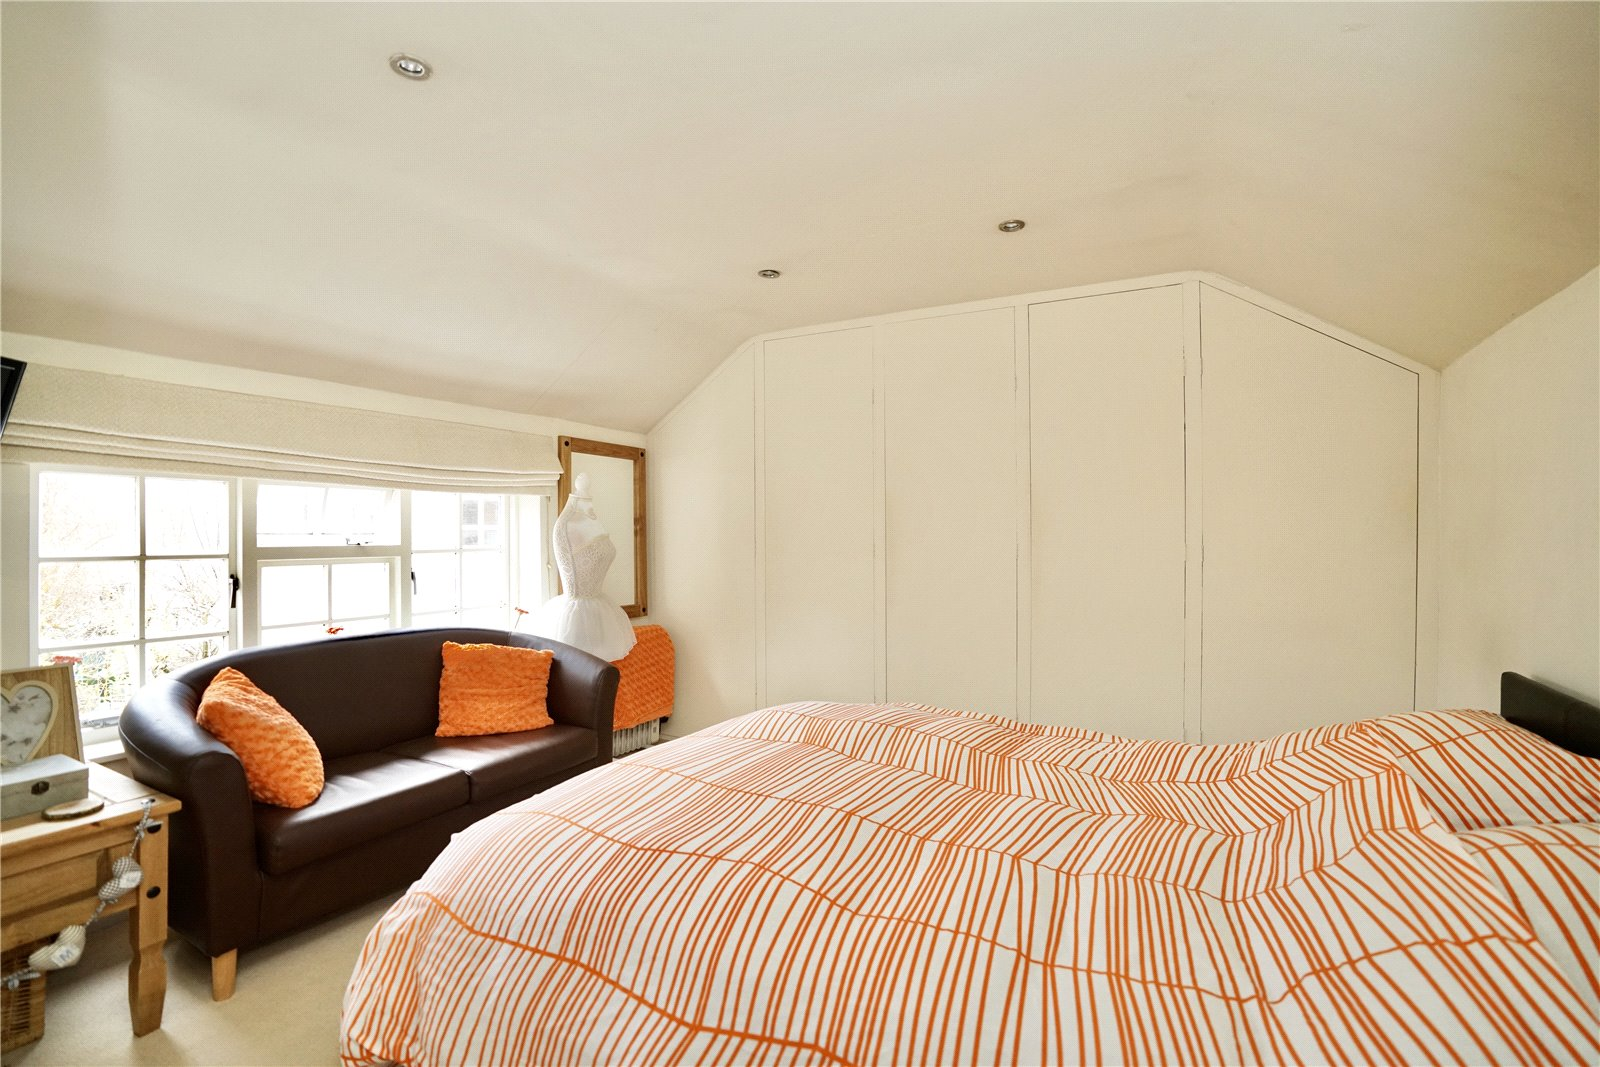 4 bed for sale in The Town, Great Staughton 9